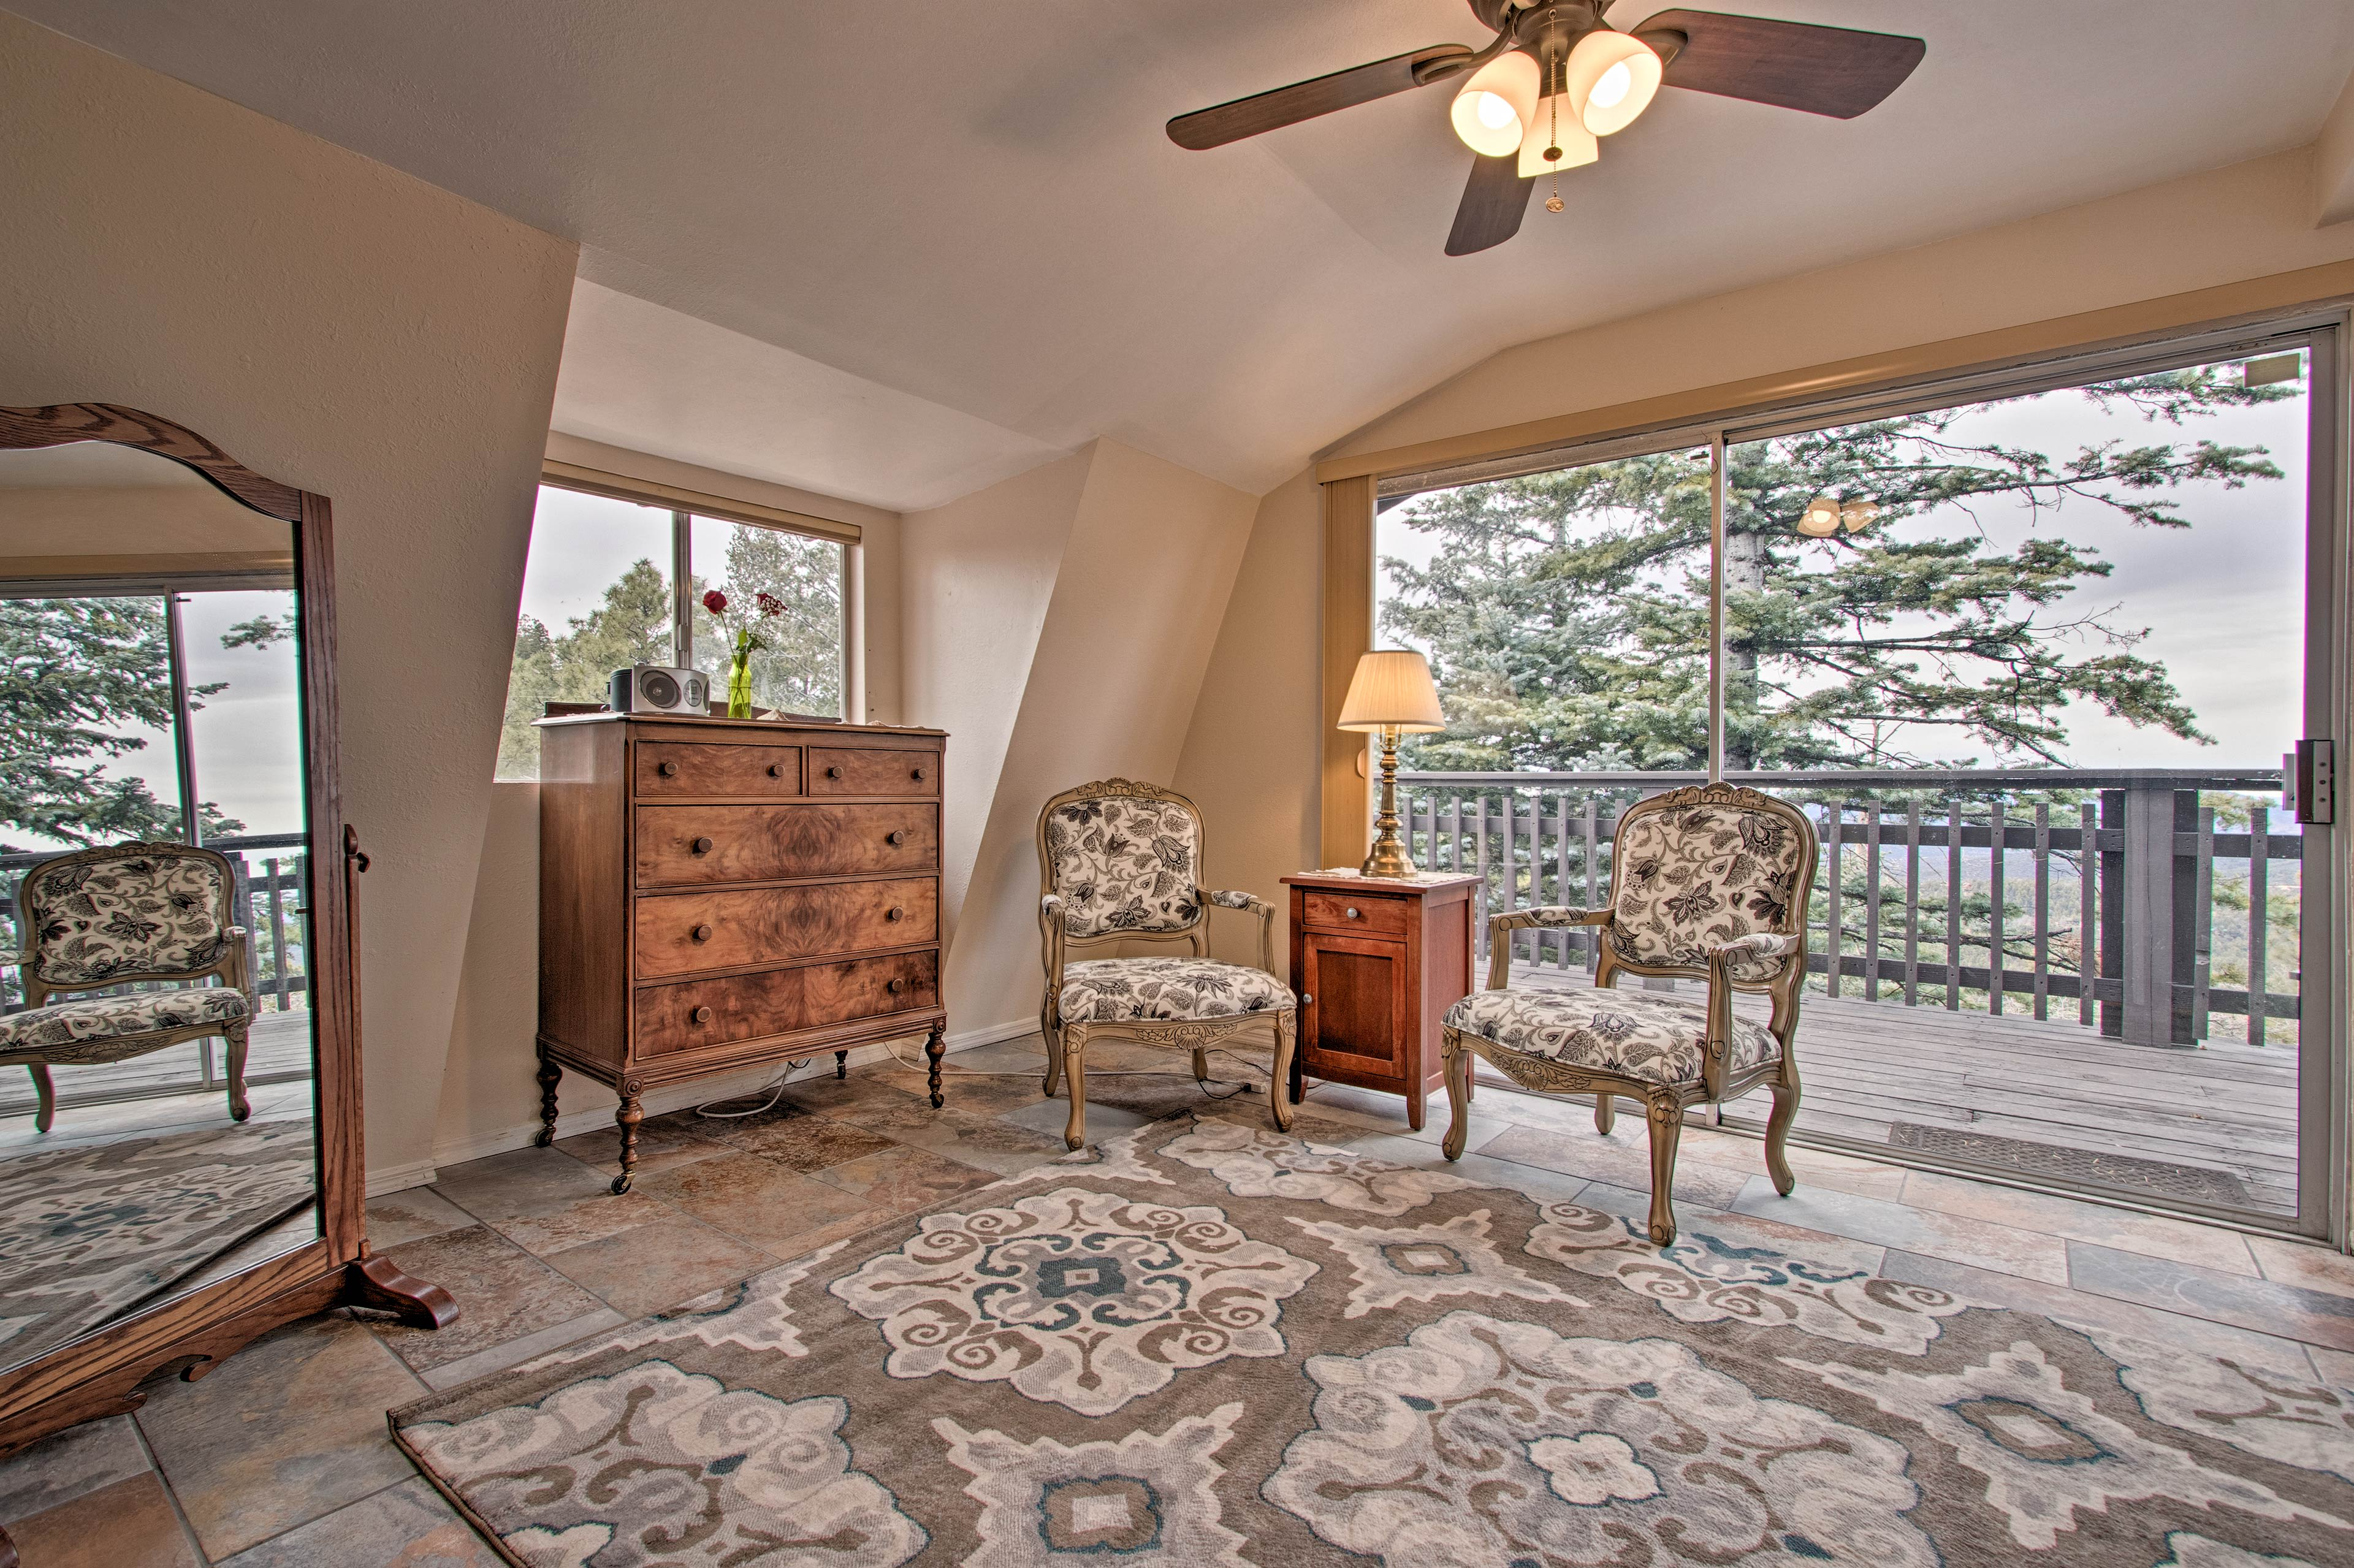 Head upstairs to the master bedroom!